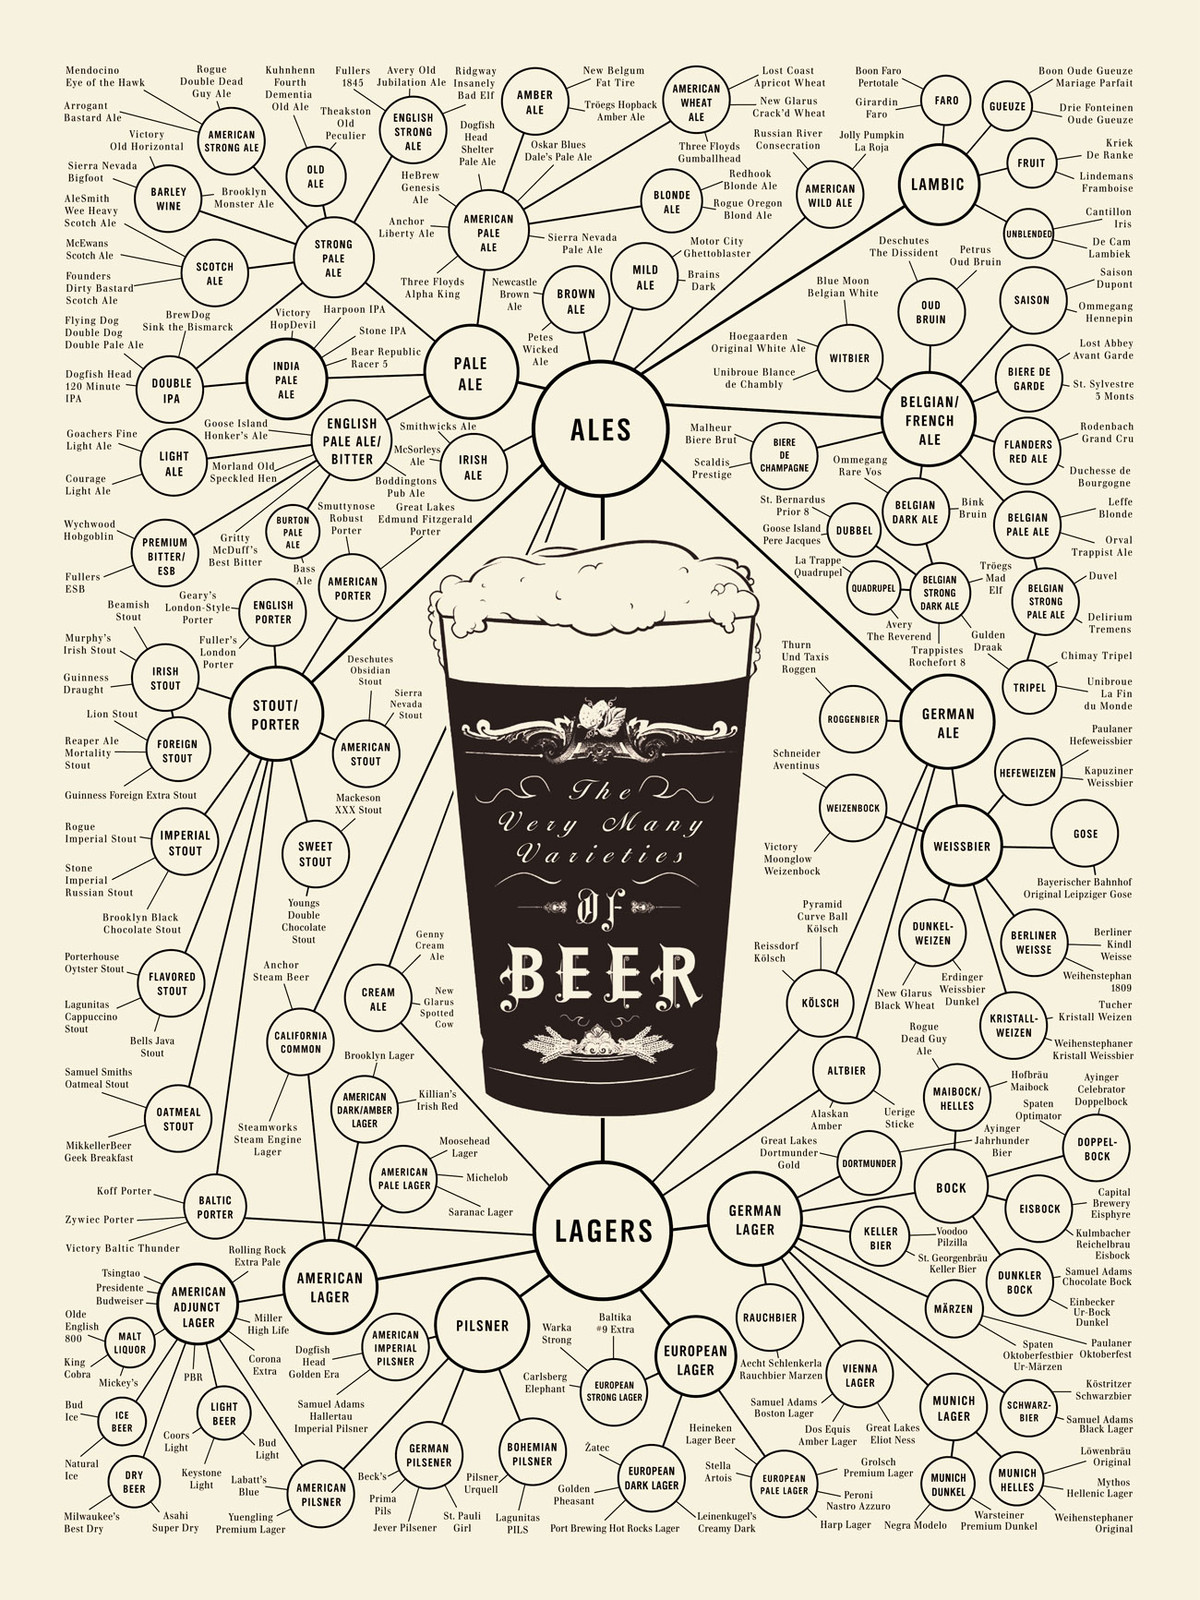 Poster beer 1300